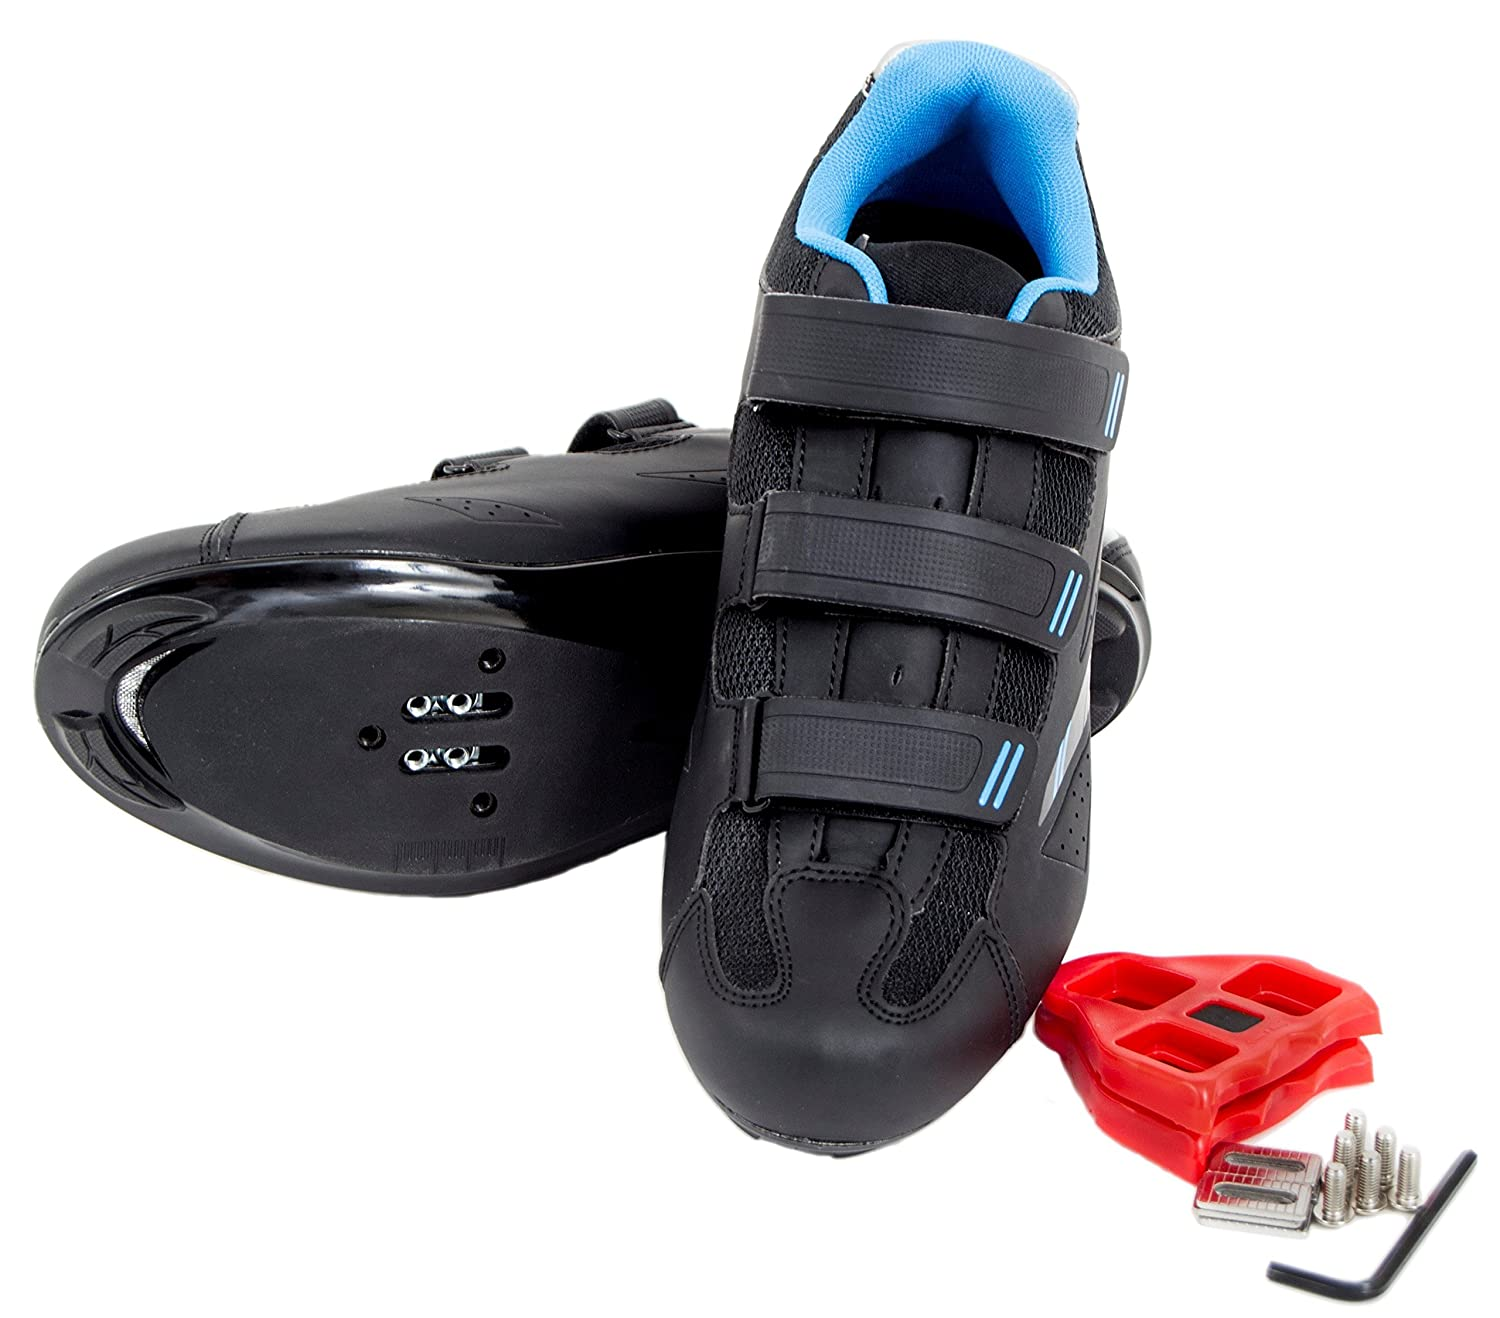 Tommaso Pista 100 Women's Spin Class Ready Cycling Shoe with Compatable Cleat - Black/Blue B07665XFRQ 39 EU/ 8.5 US W|Look Delta